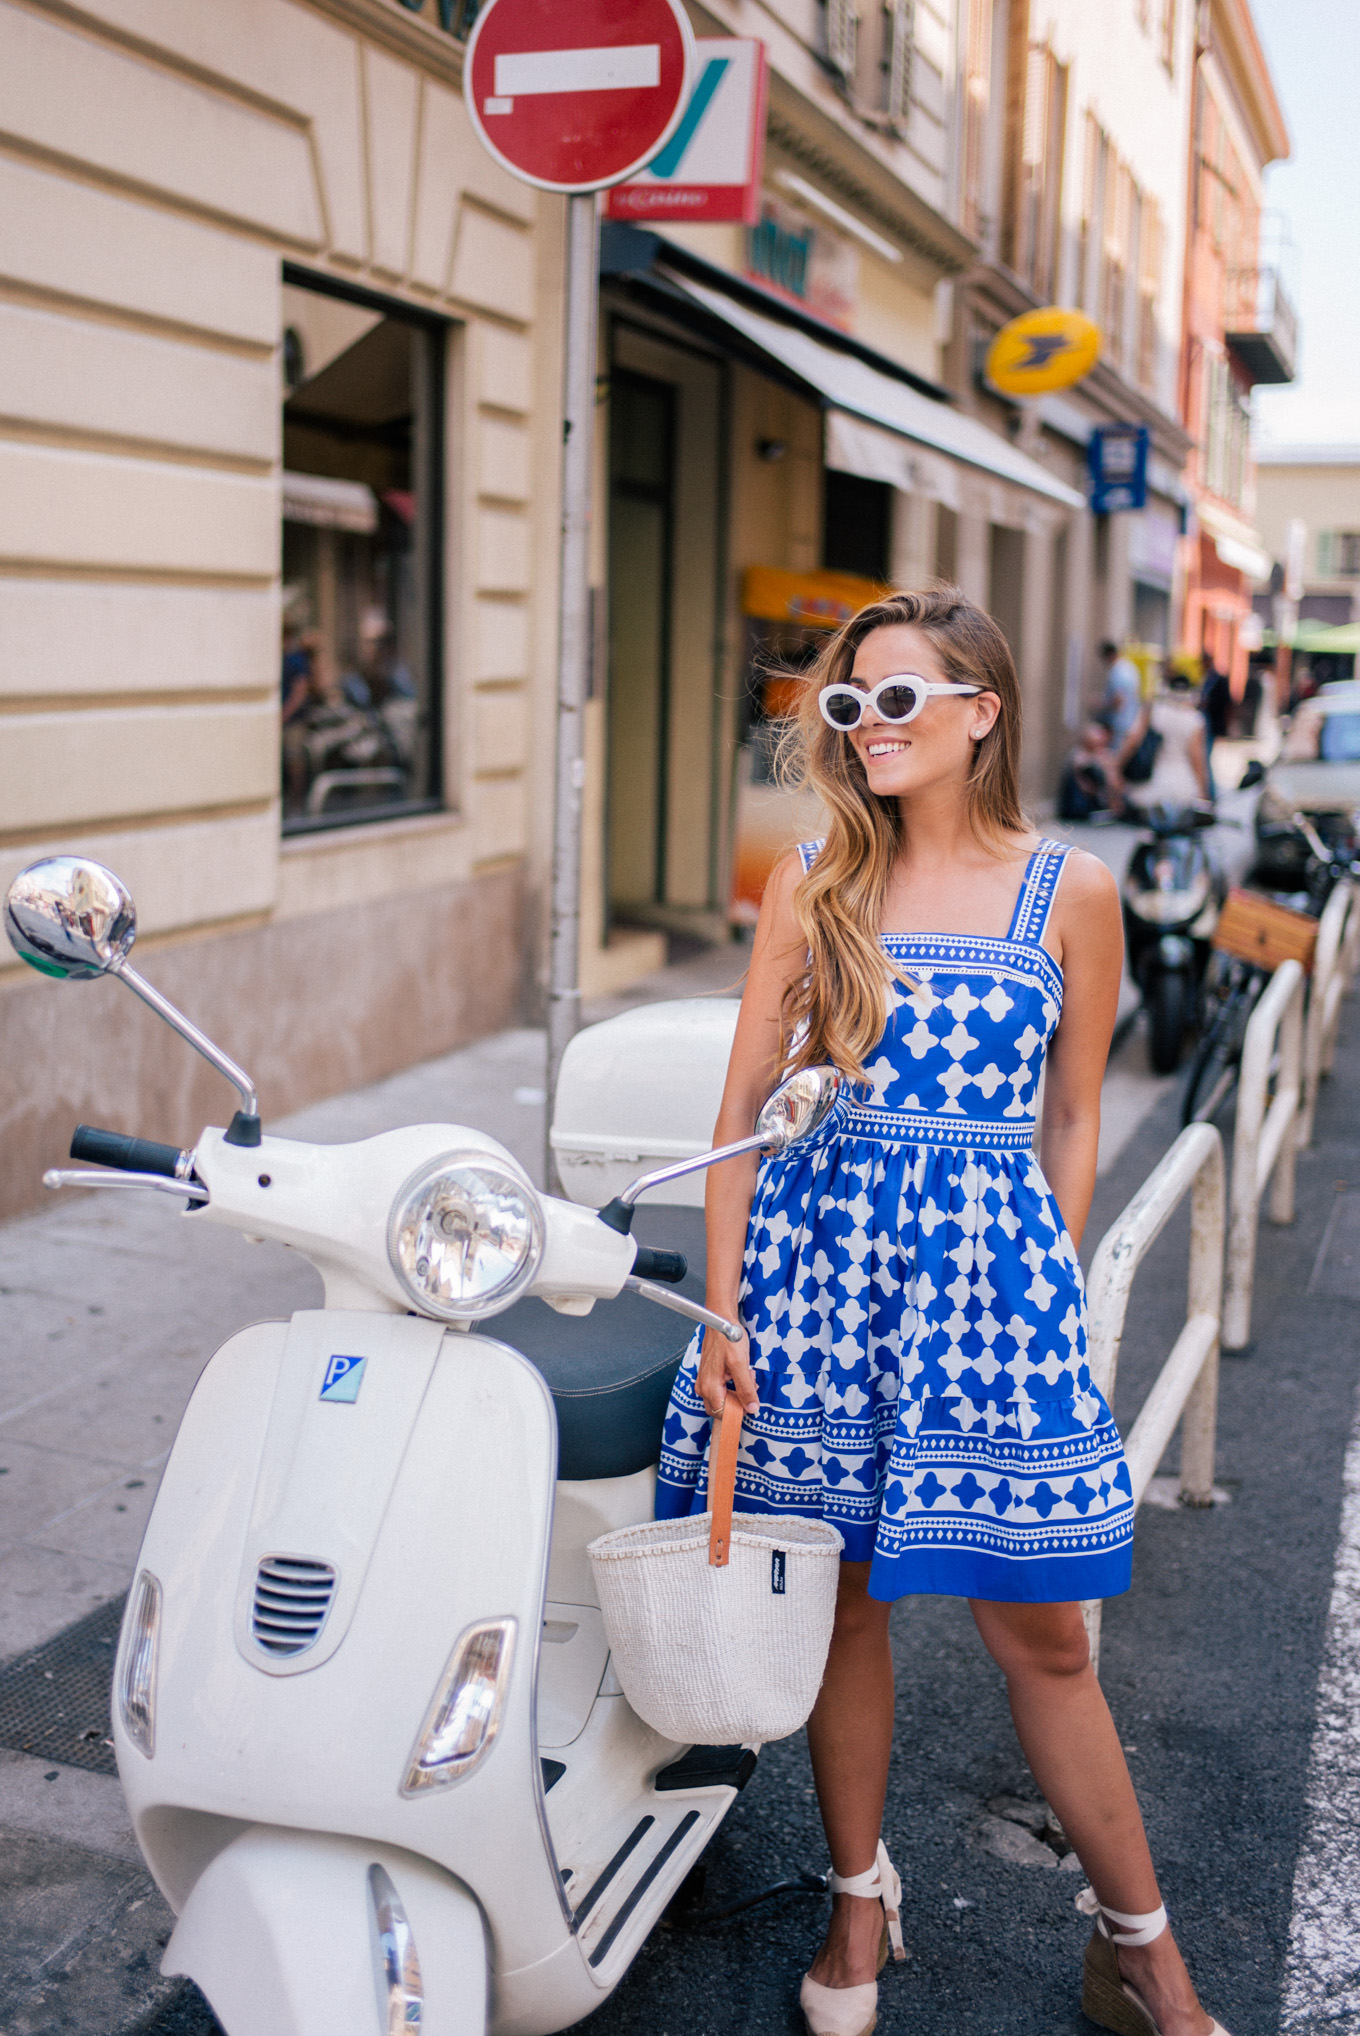 gmg-blue-and-white-nice-france-1007484